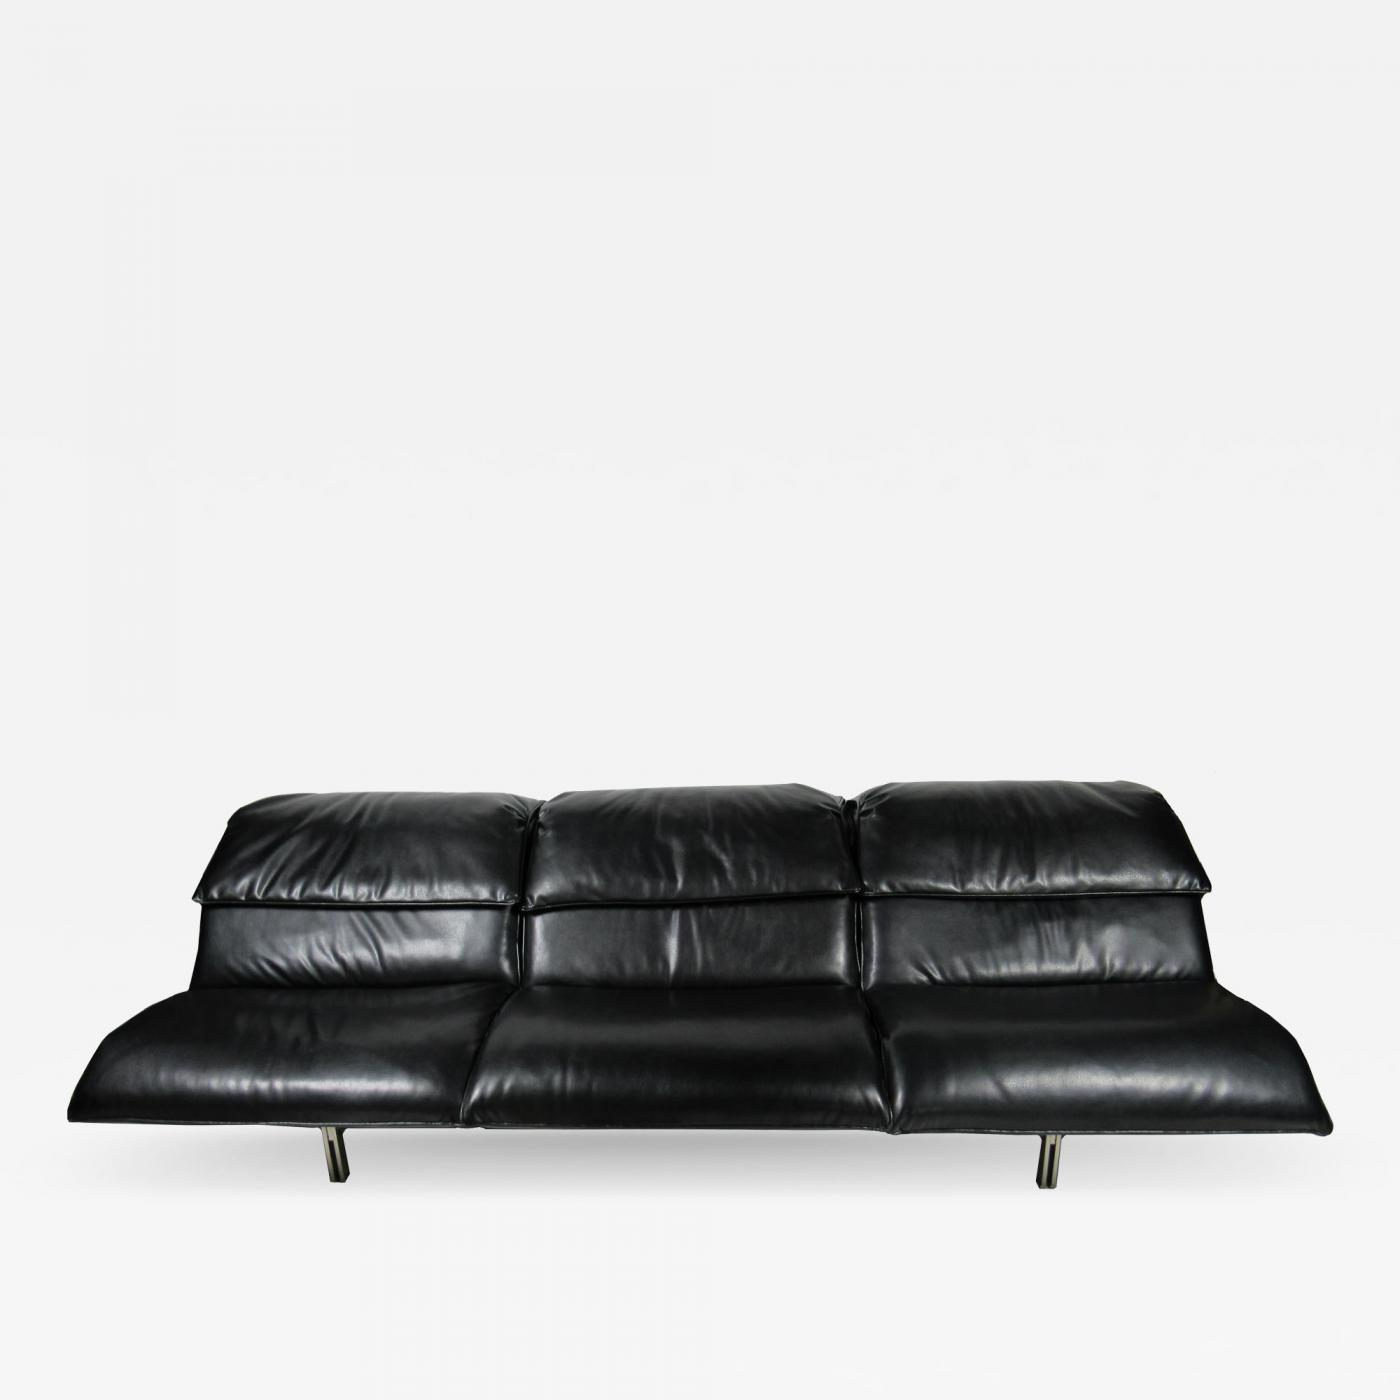 Saporiti - An Italian Modern Stainless Steel and Leather 3 Seat \